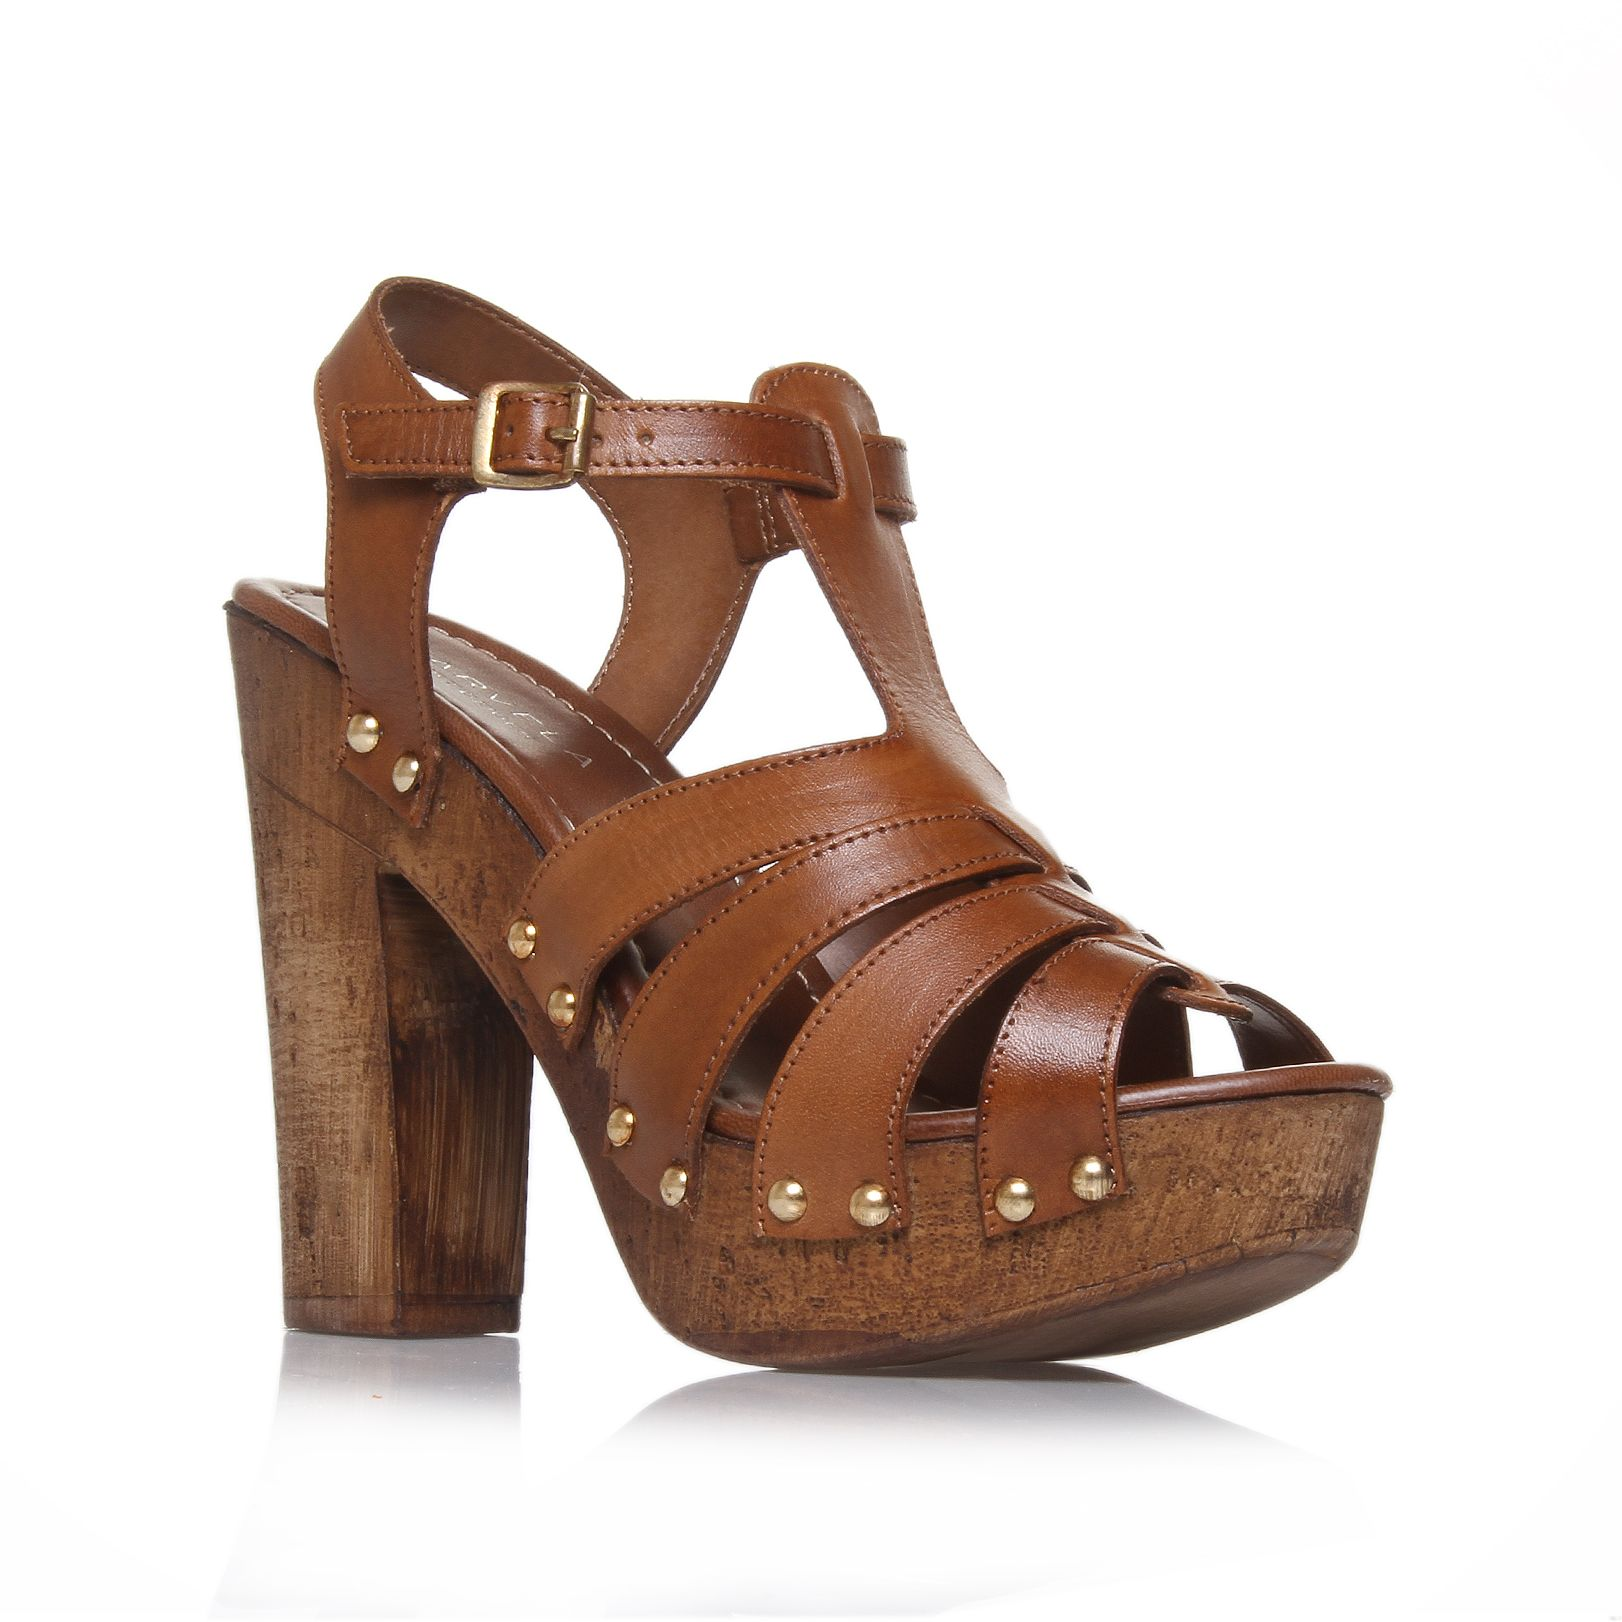 Kimberley platform court shoes